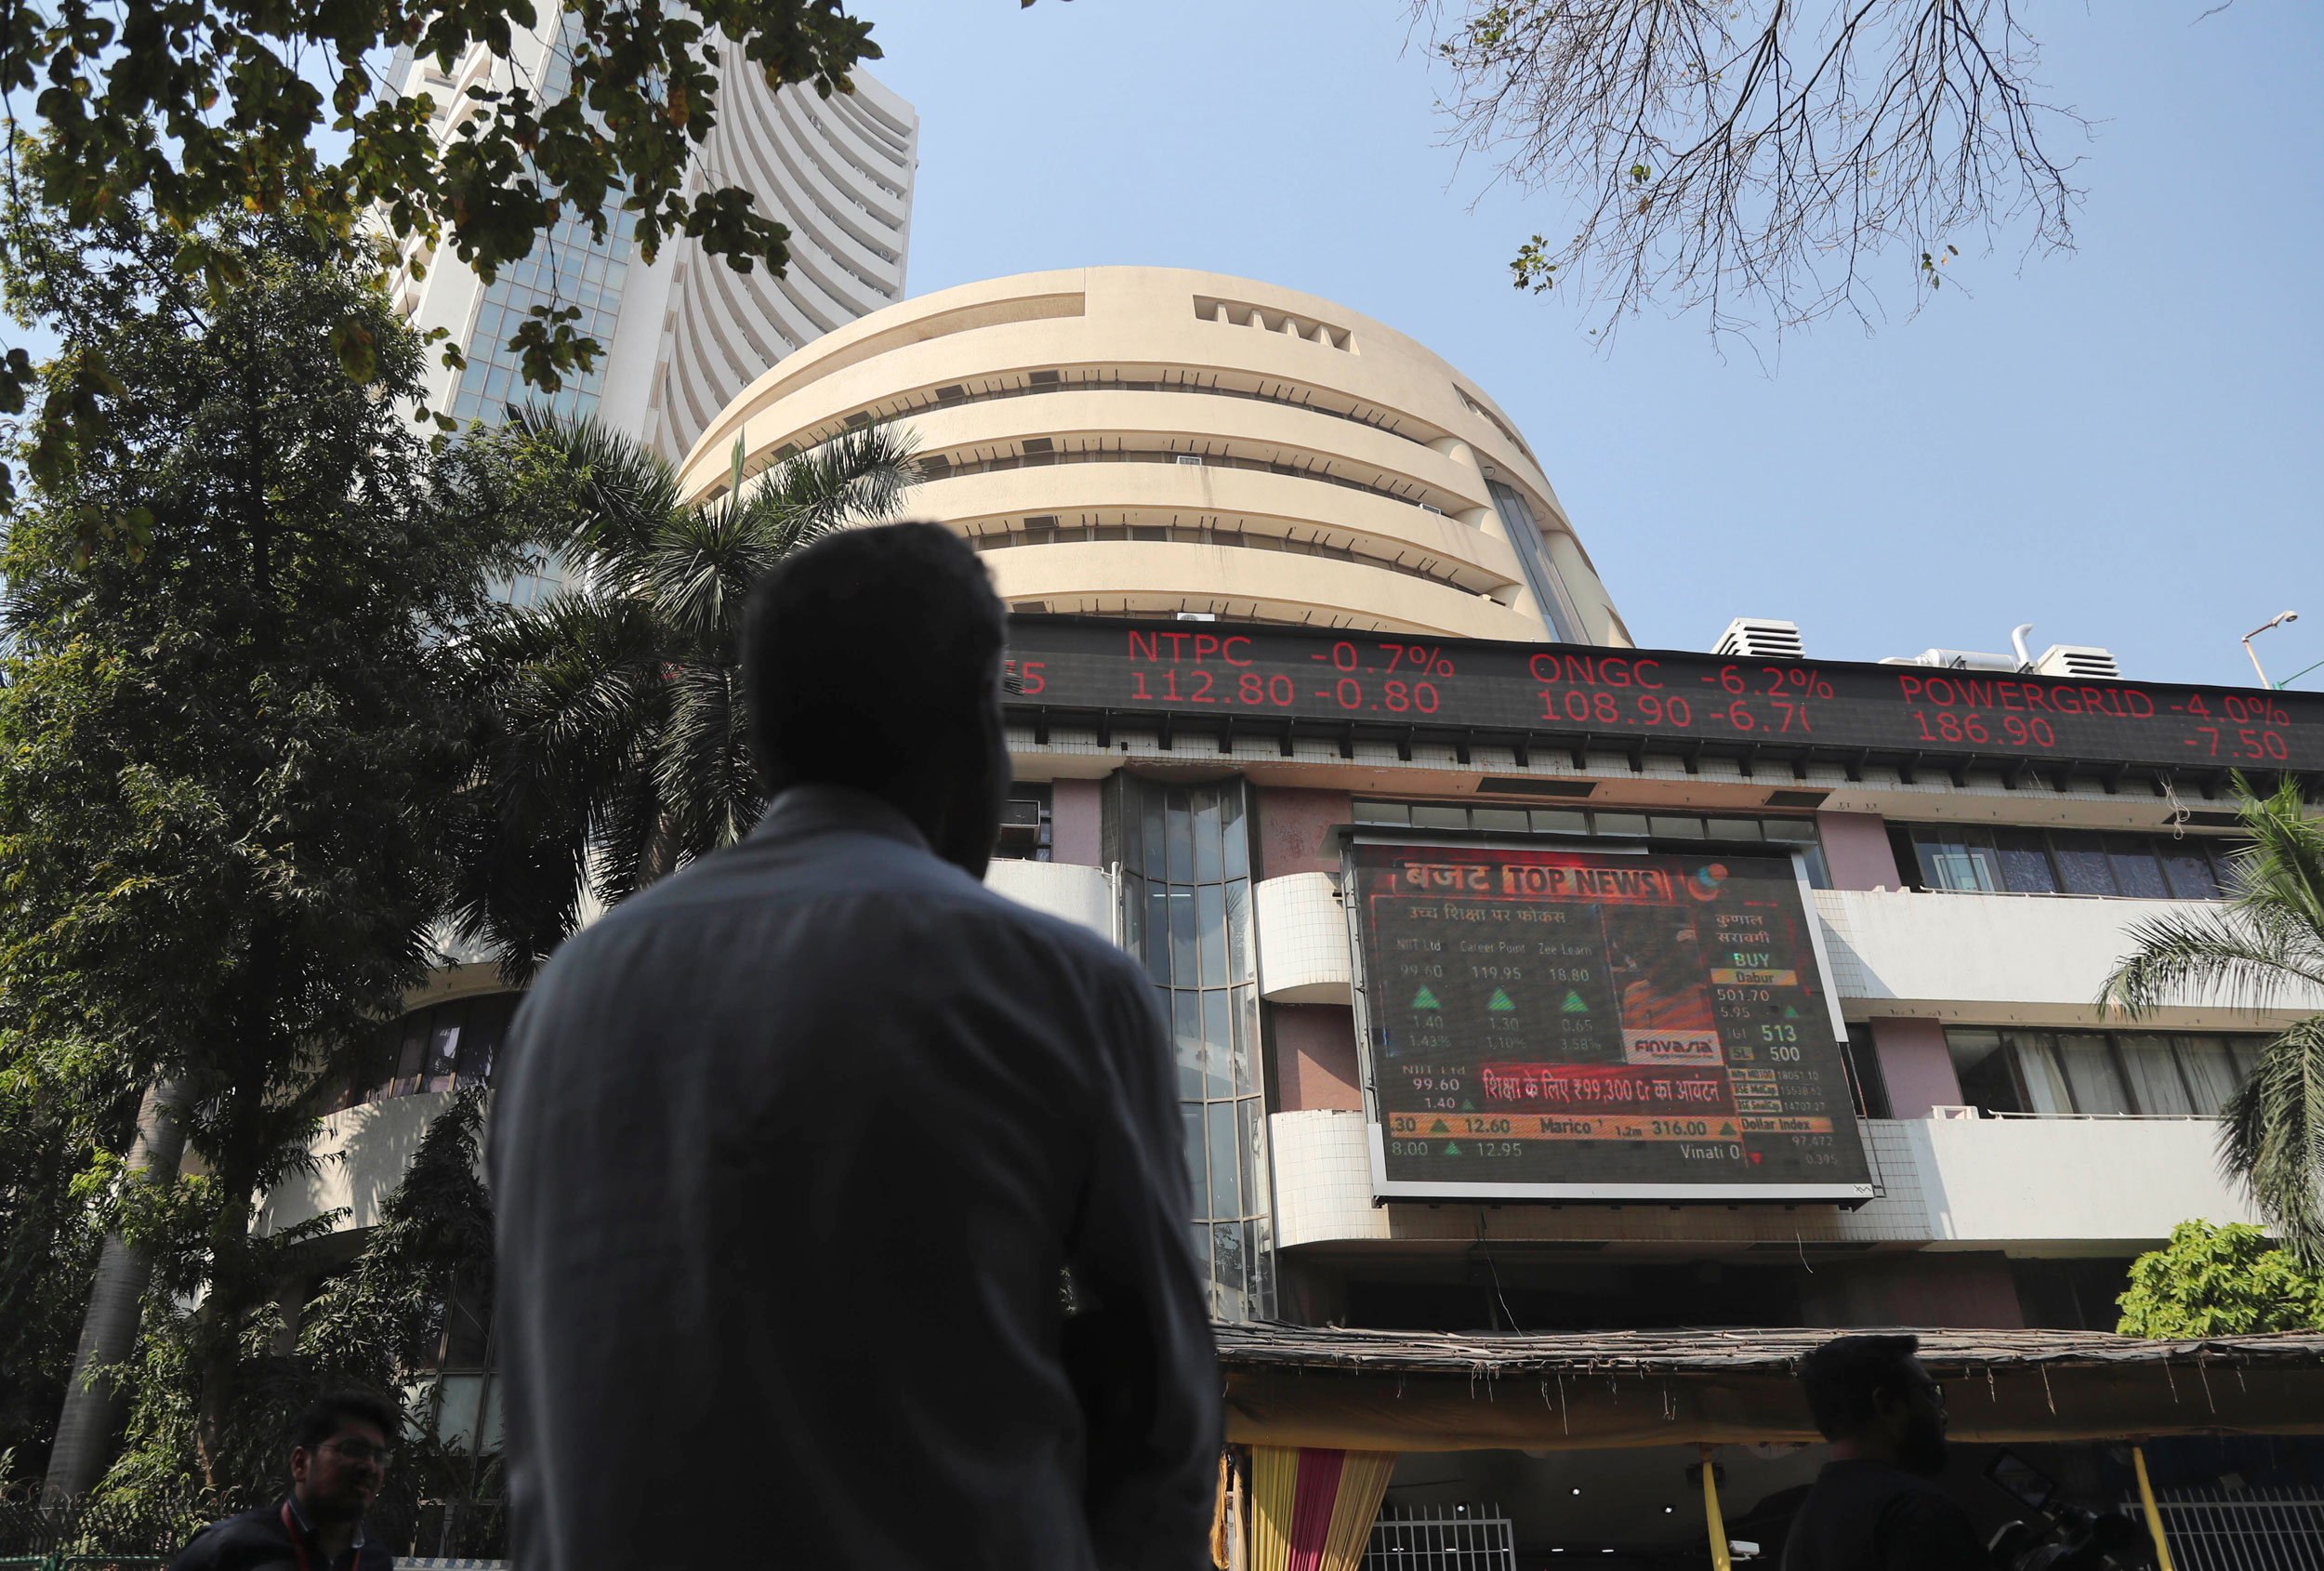 A man watches the stock exchange index on a display screen on the facade of the the BSE building in Mumbai.